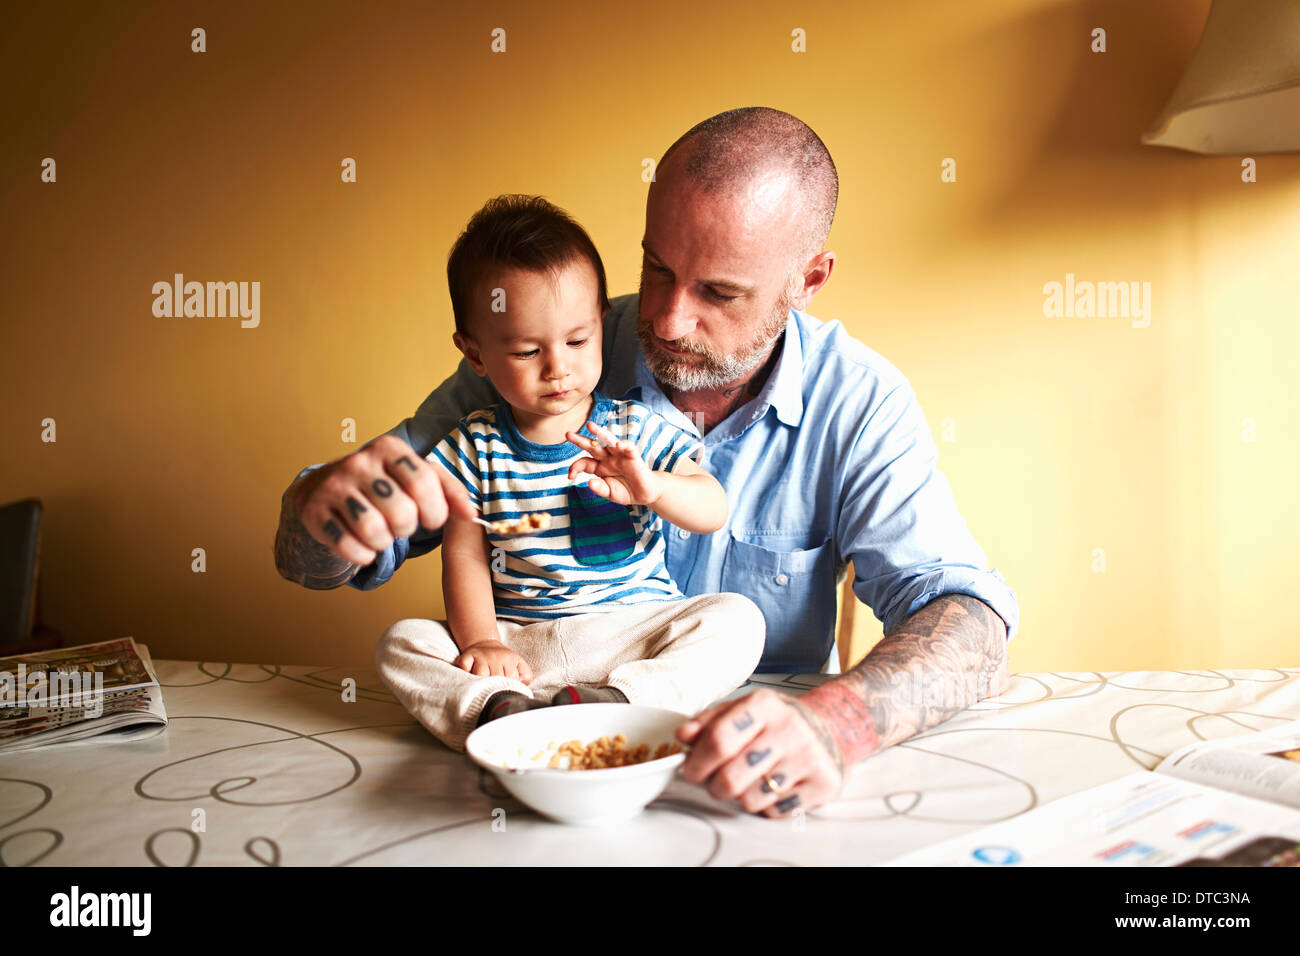 Baby boy sitting on table having cereal with father - Stock Image